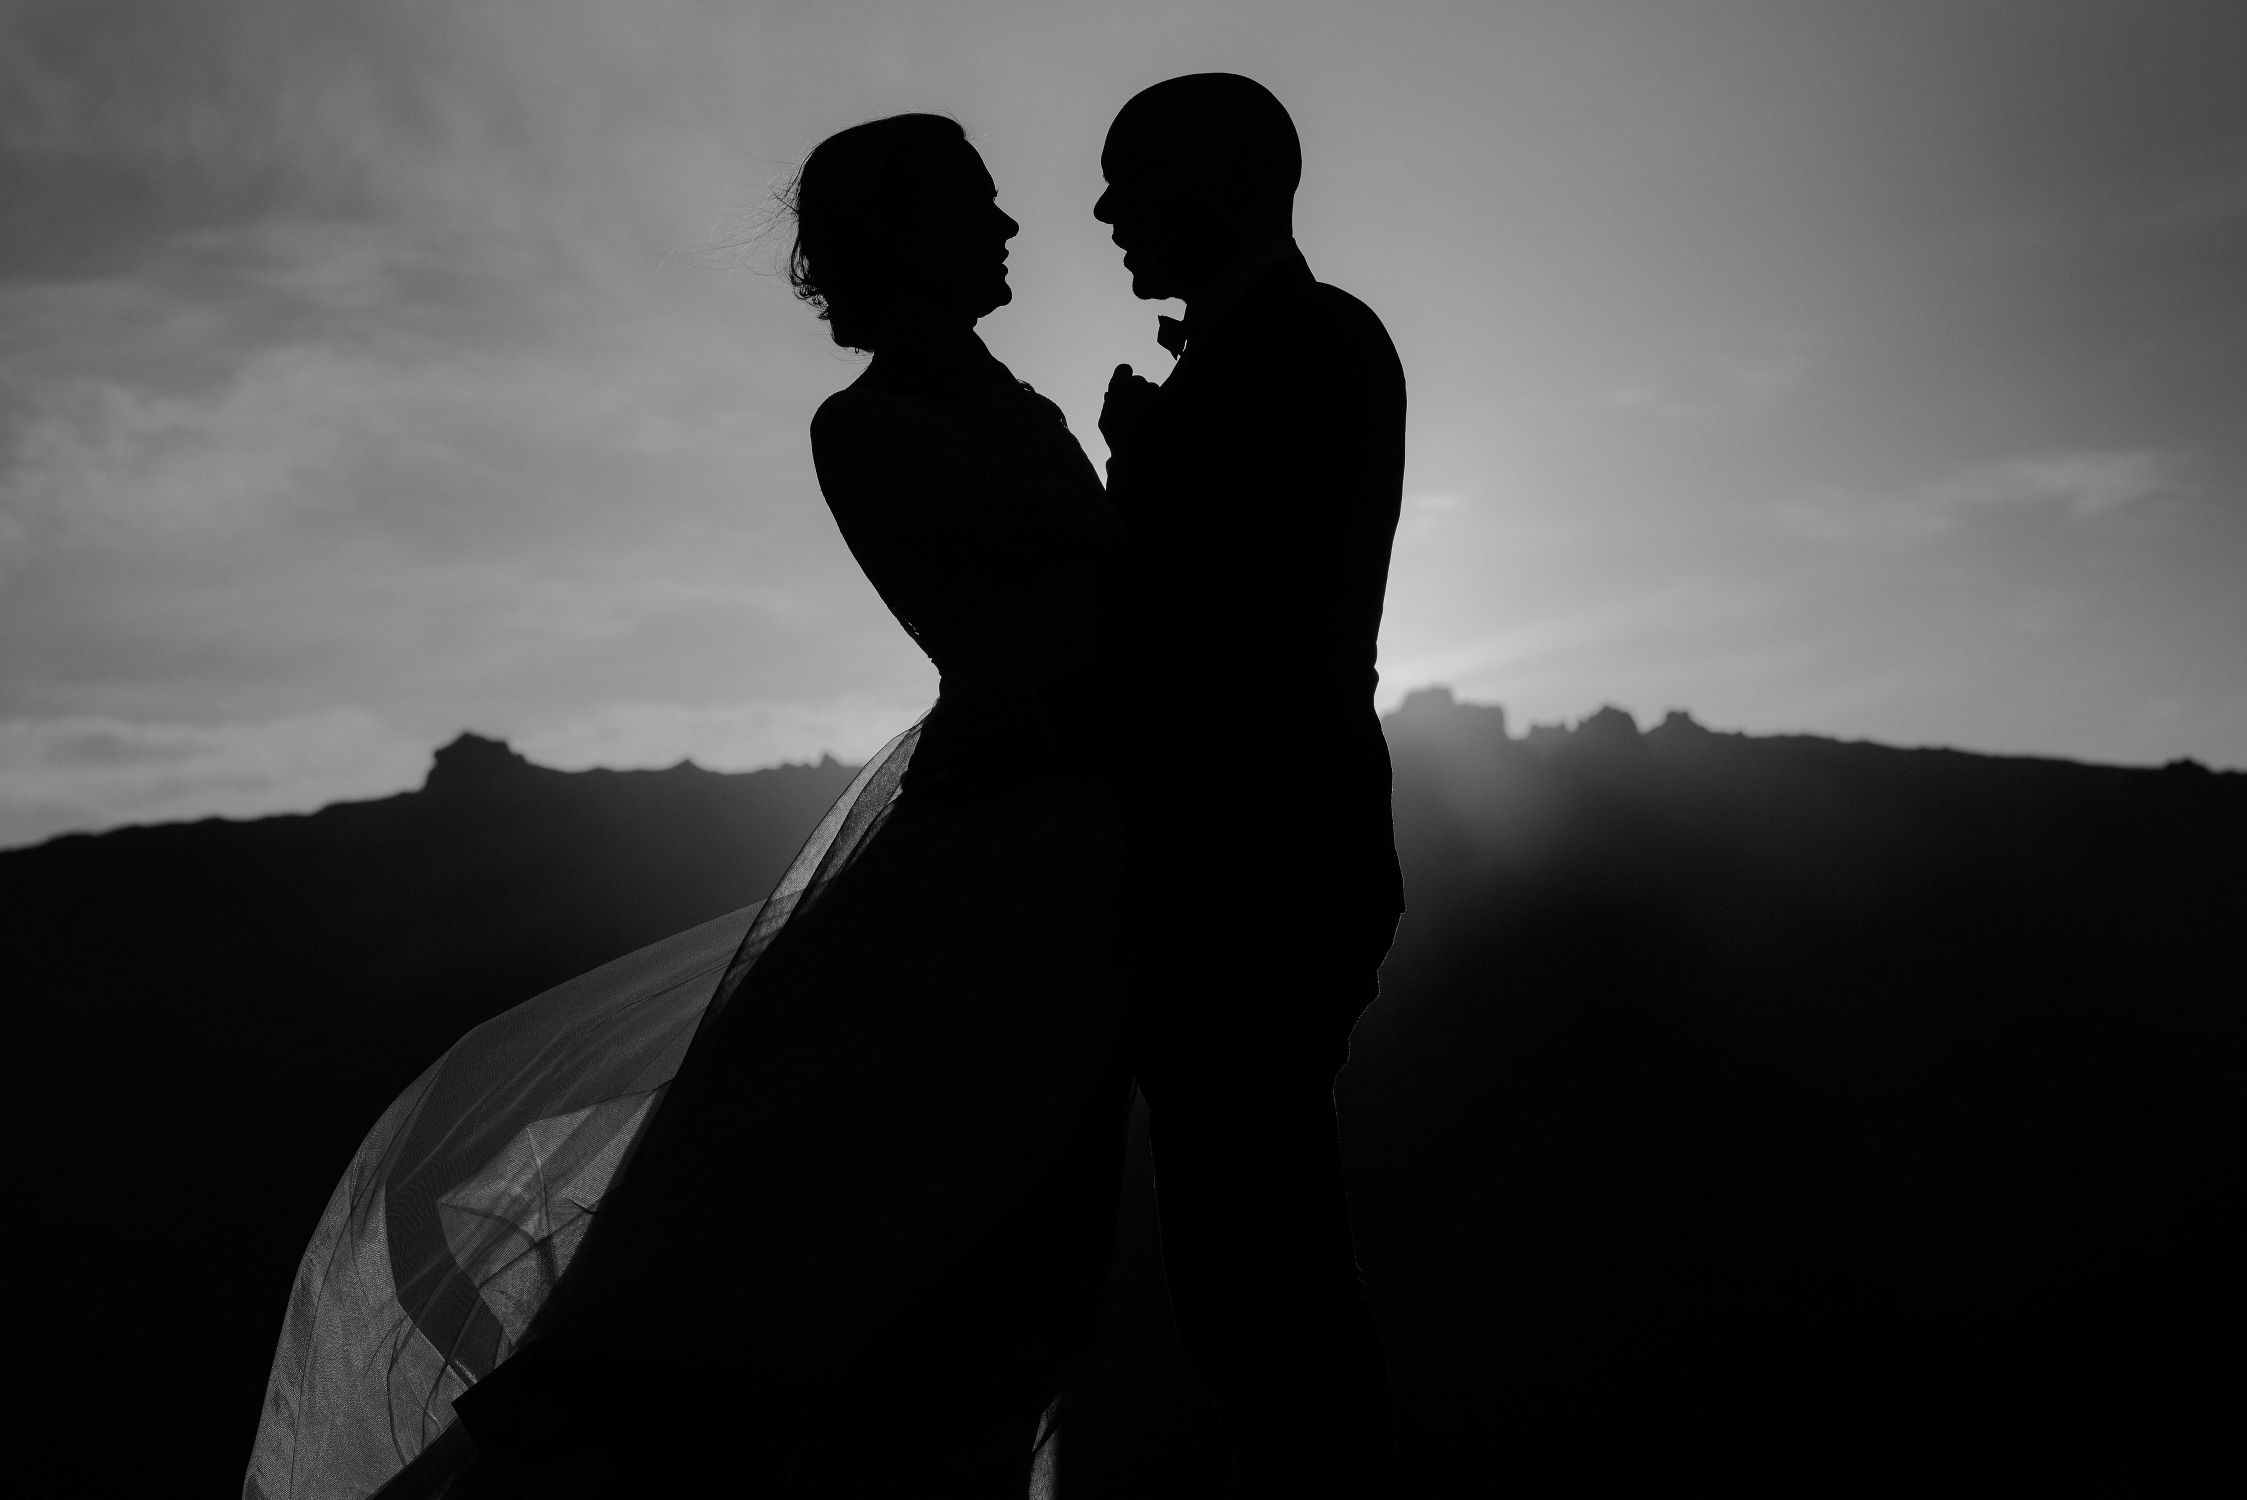 Snaefellsnes black and white silhouette of couple